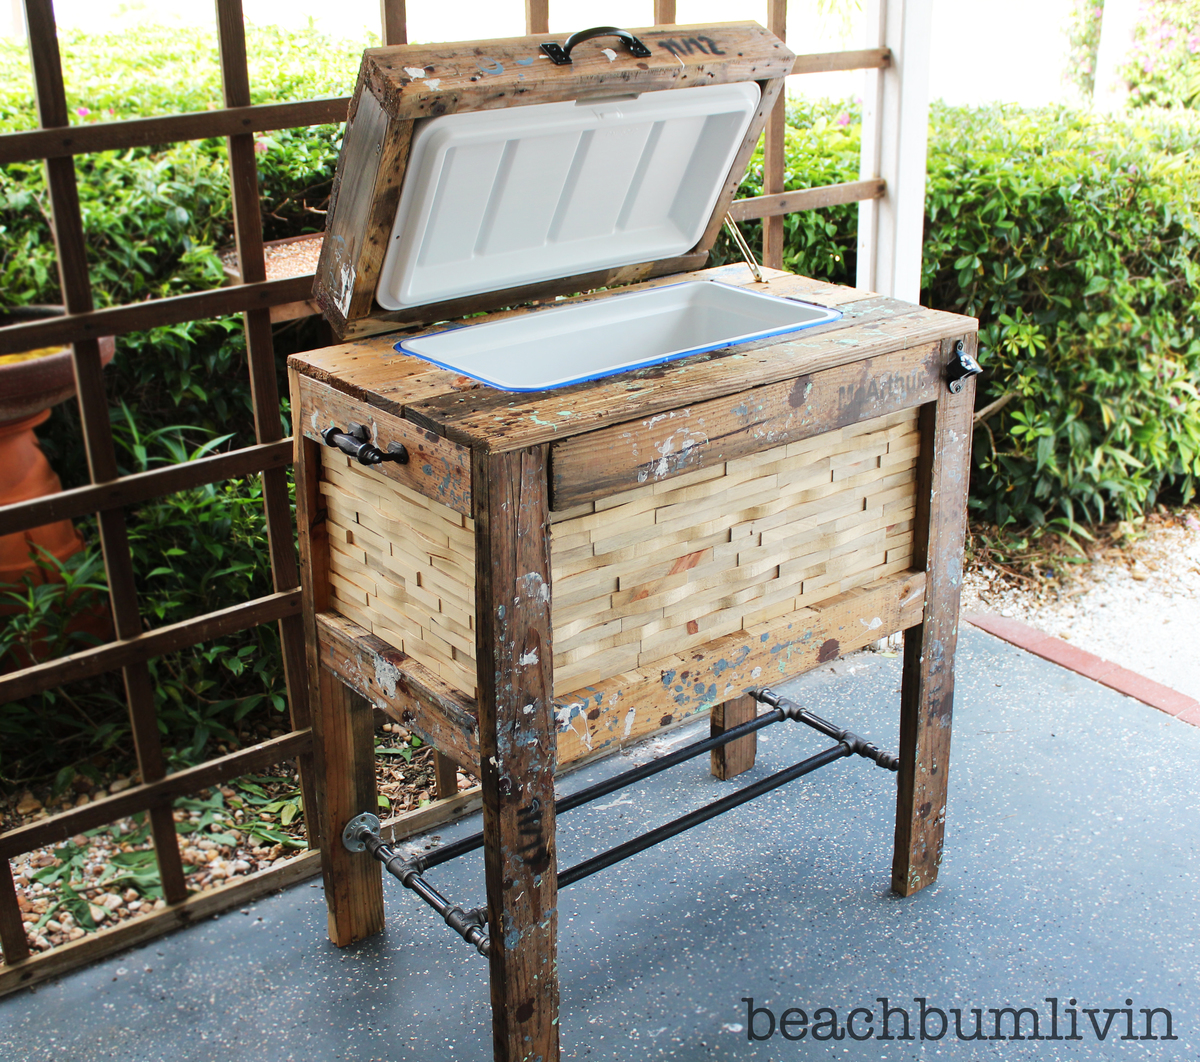 Ana white rustic wood cooler box made from pallets diy projects - How to make rustic wood furniture ...